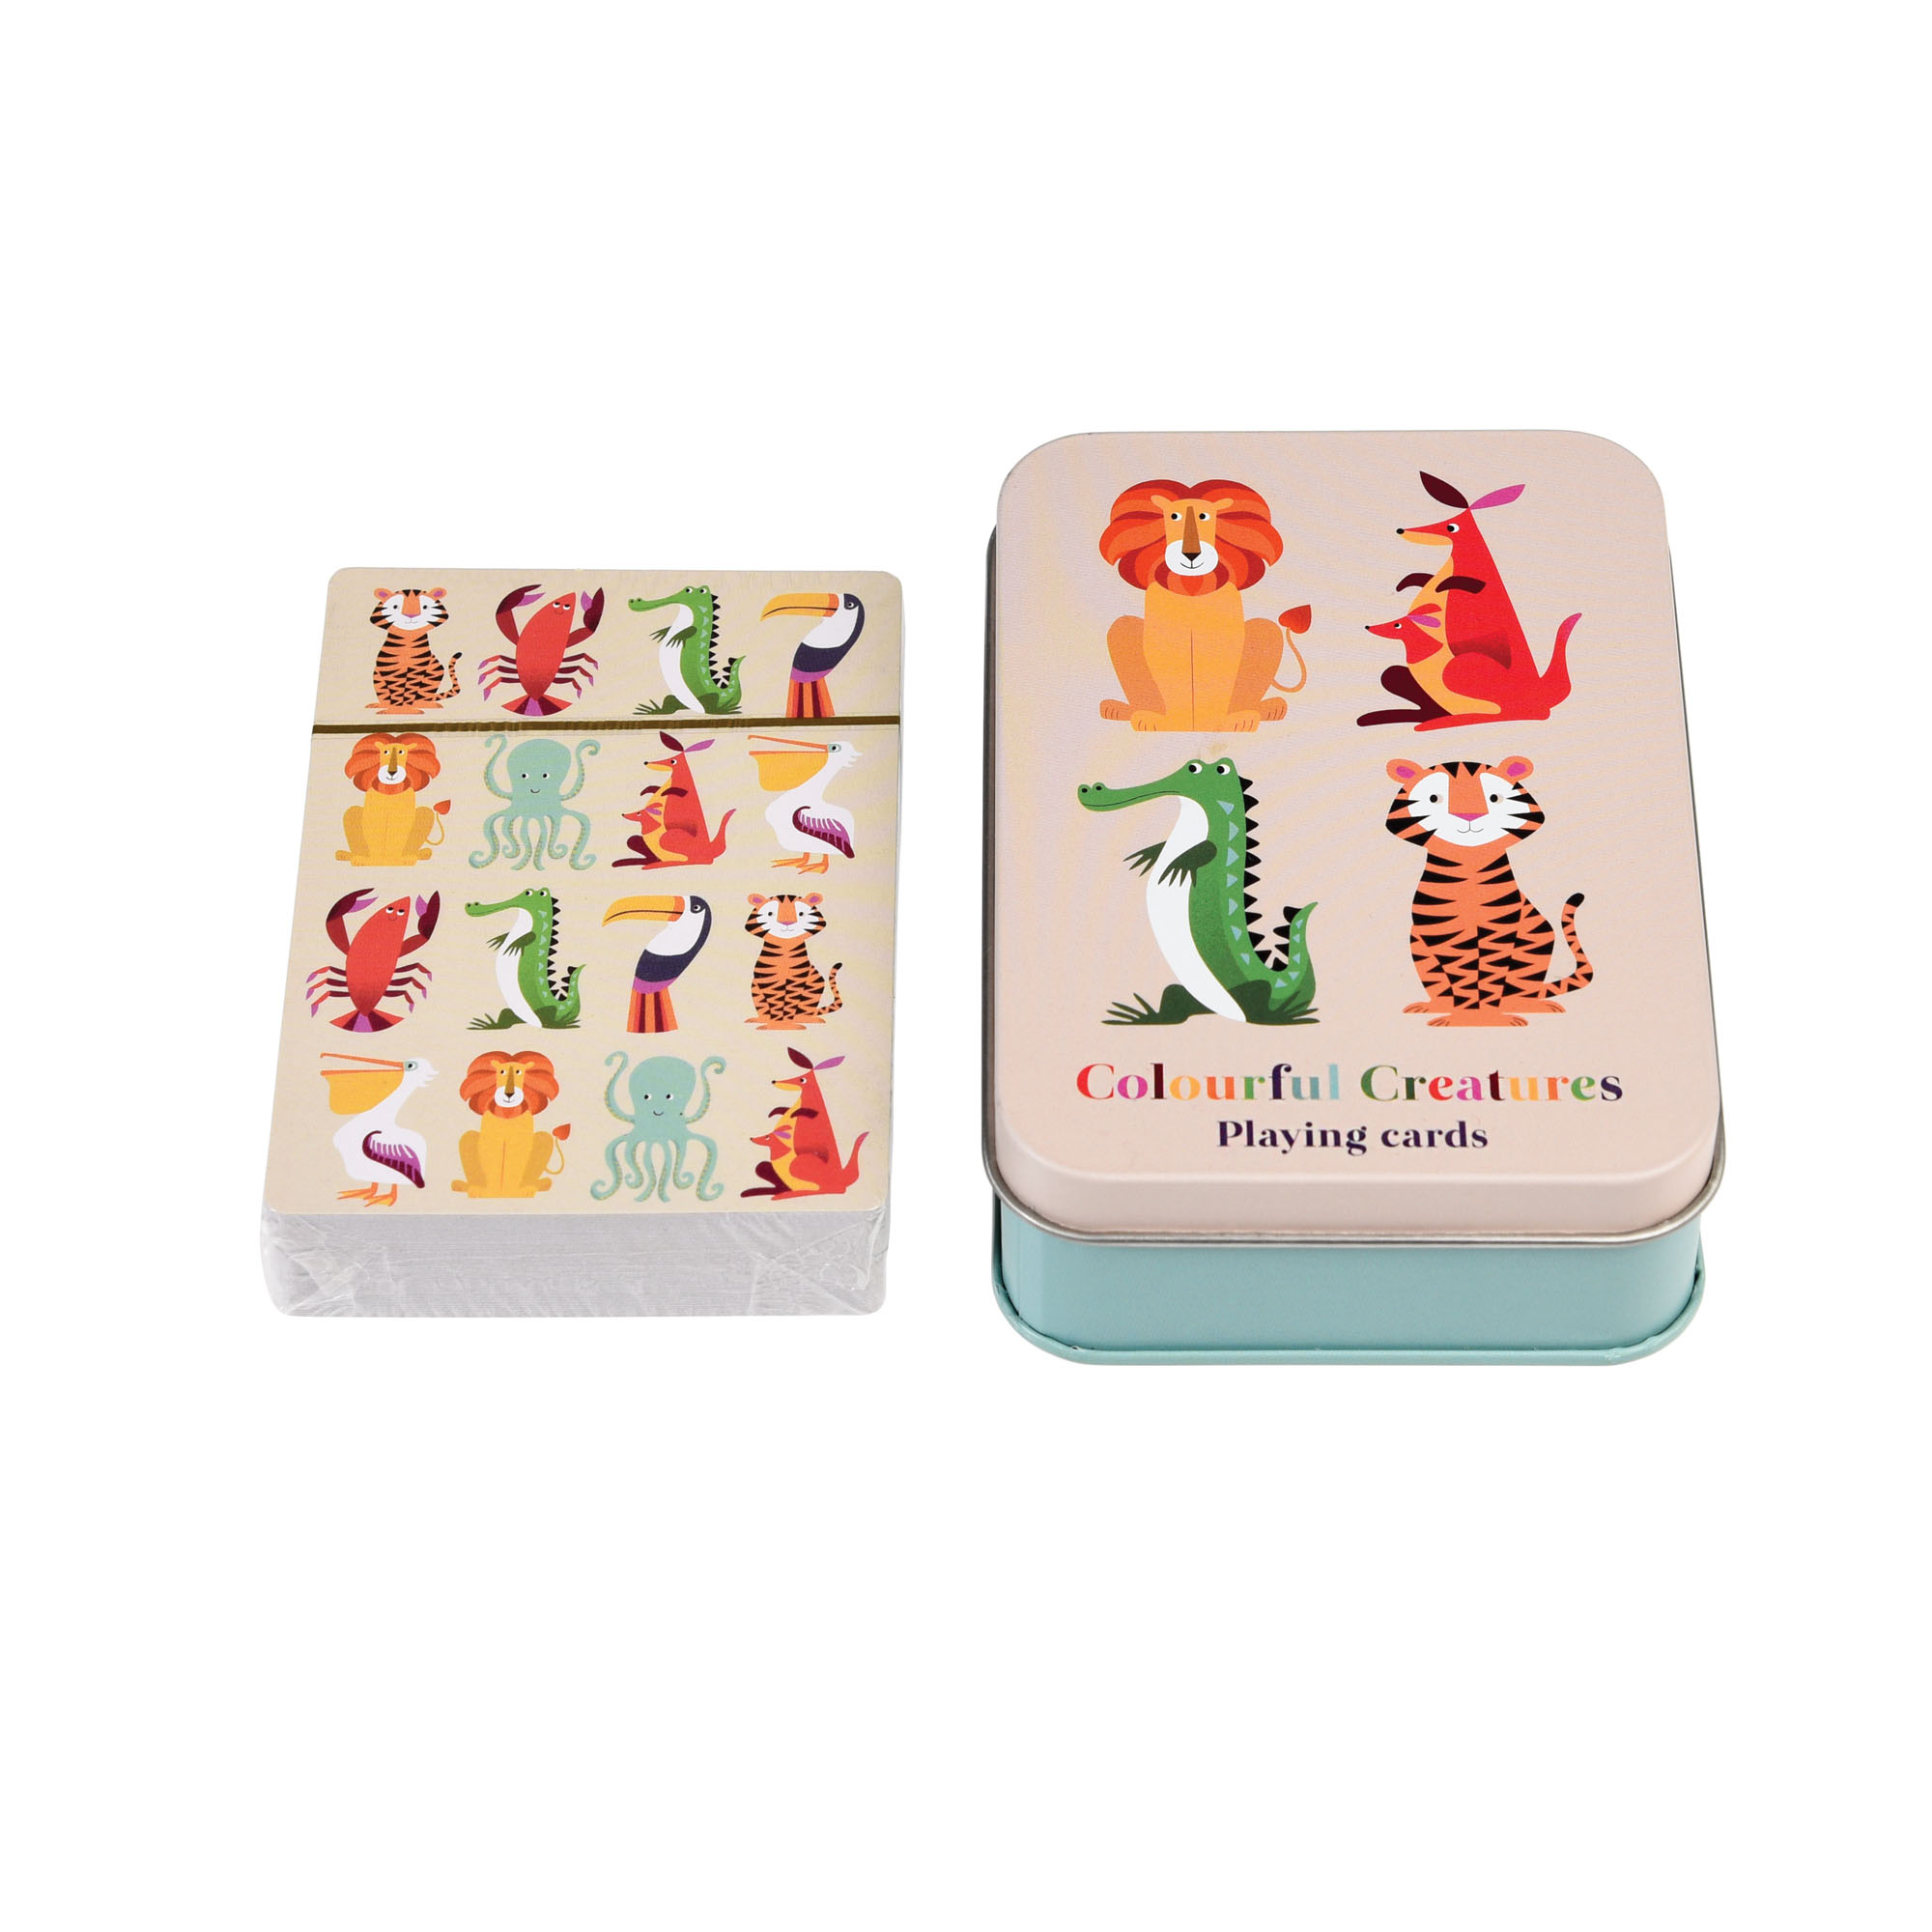 Colourful creatures playing cards